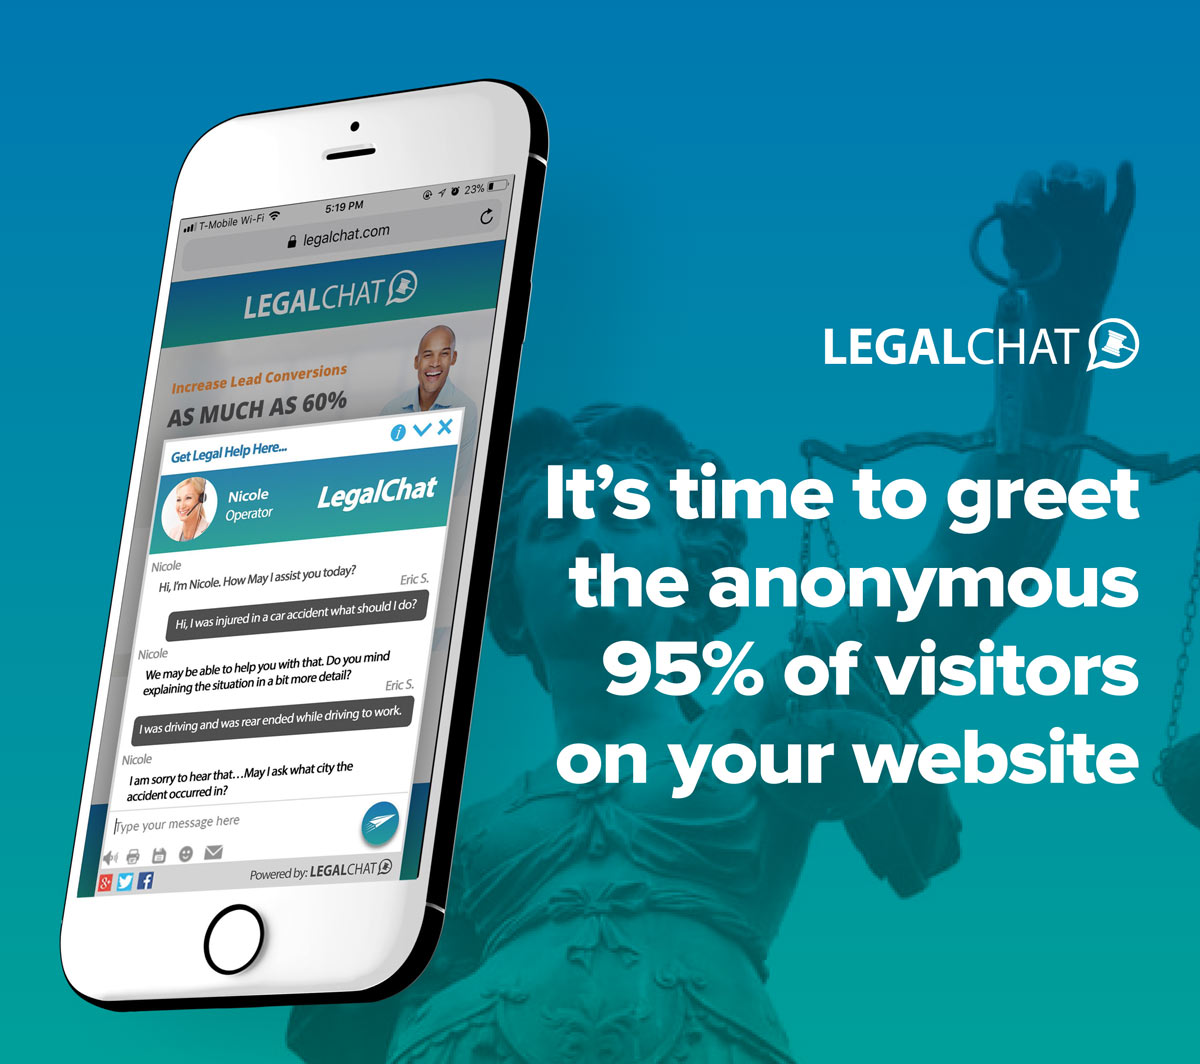 It's time to greet the anonymous 95% of visitors on your legal website.